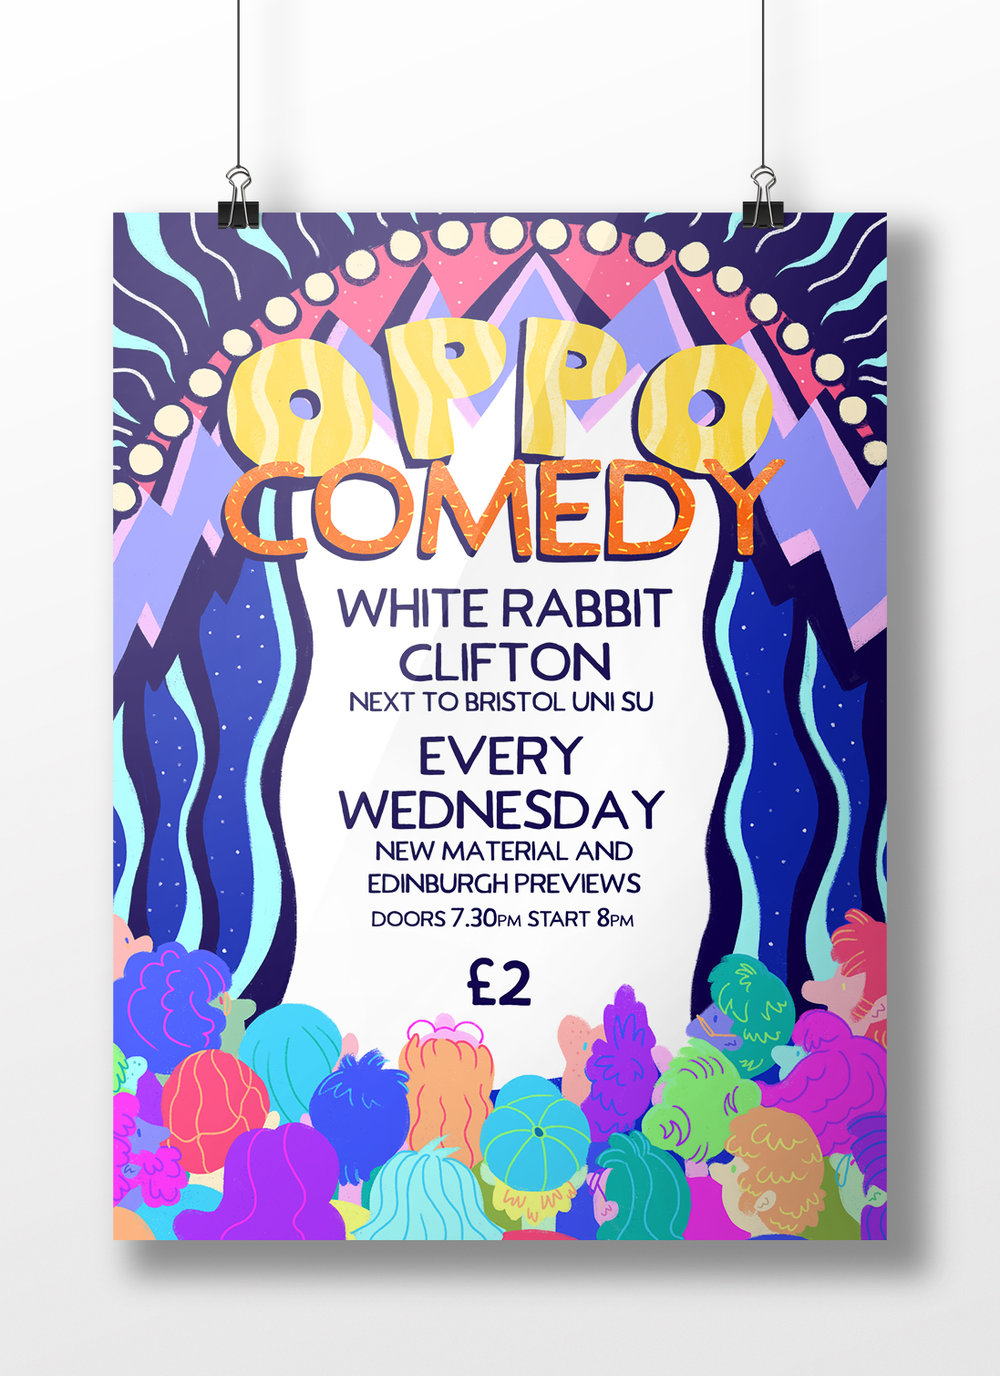 A mockup of the Oppo Comedy poster design, as it might be hung.